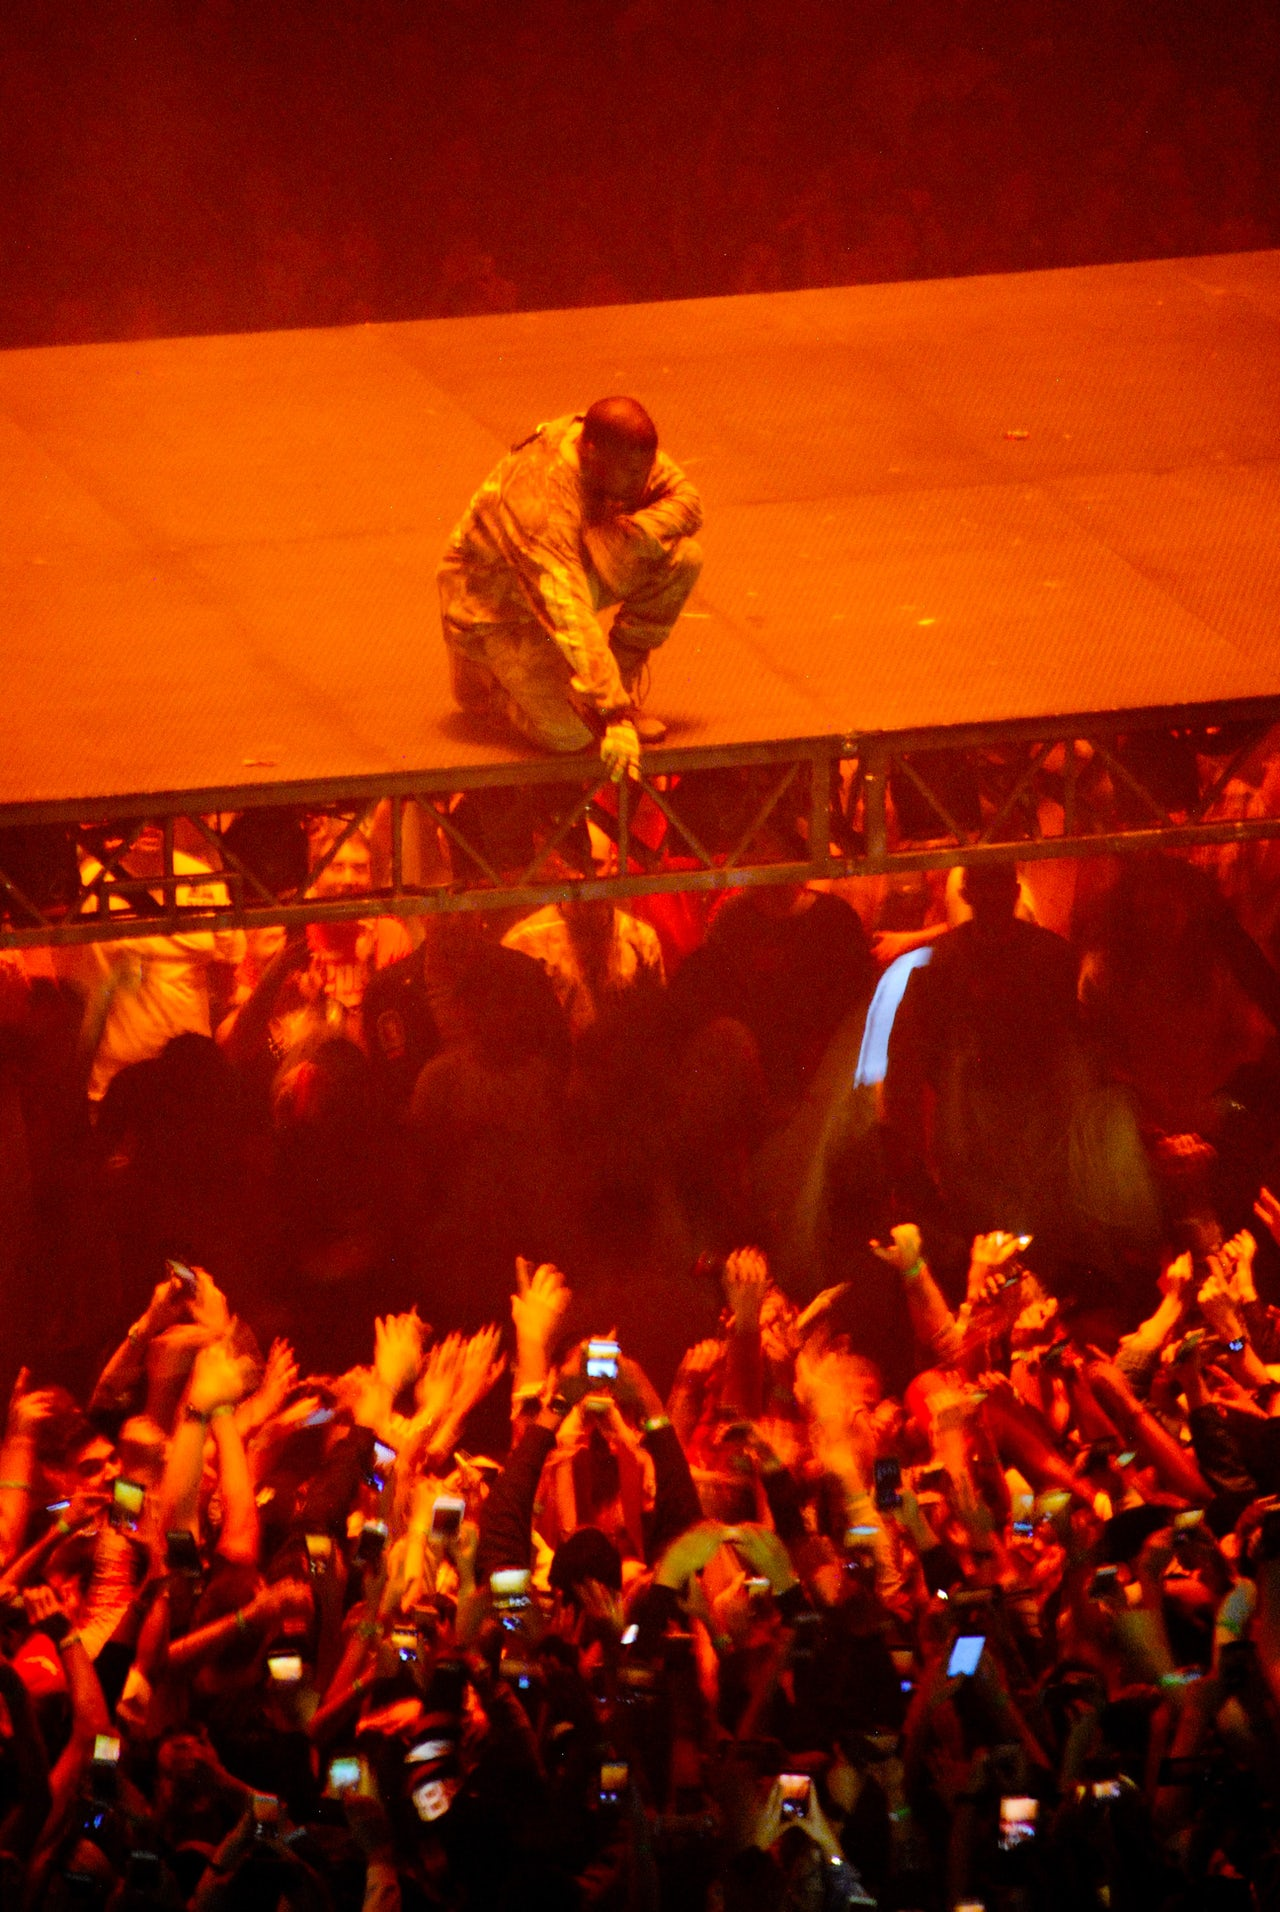 Kanye reaching down to fans at a tour stop in Los Angeles.